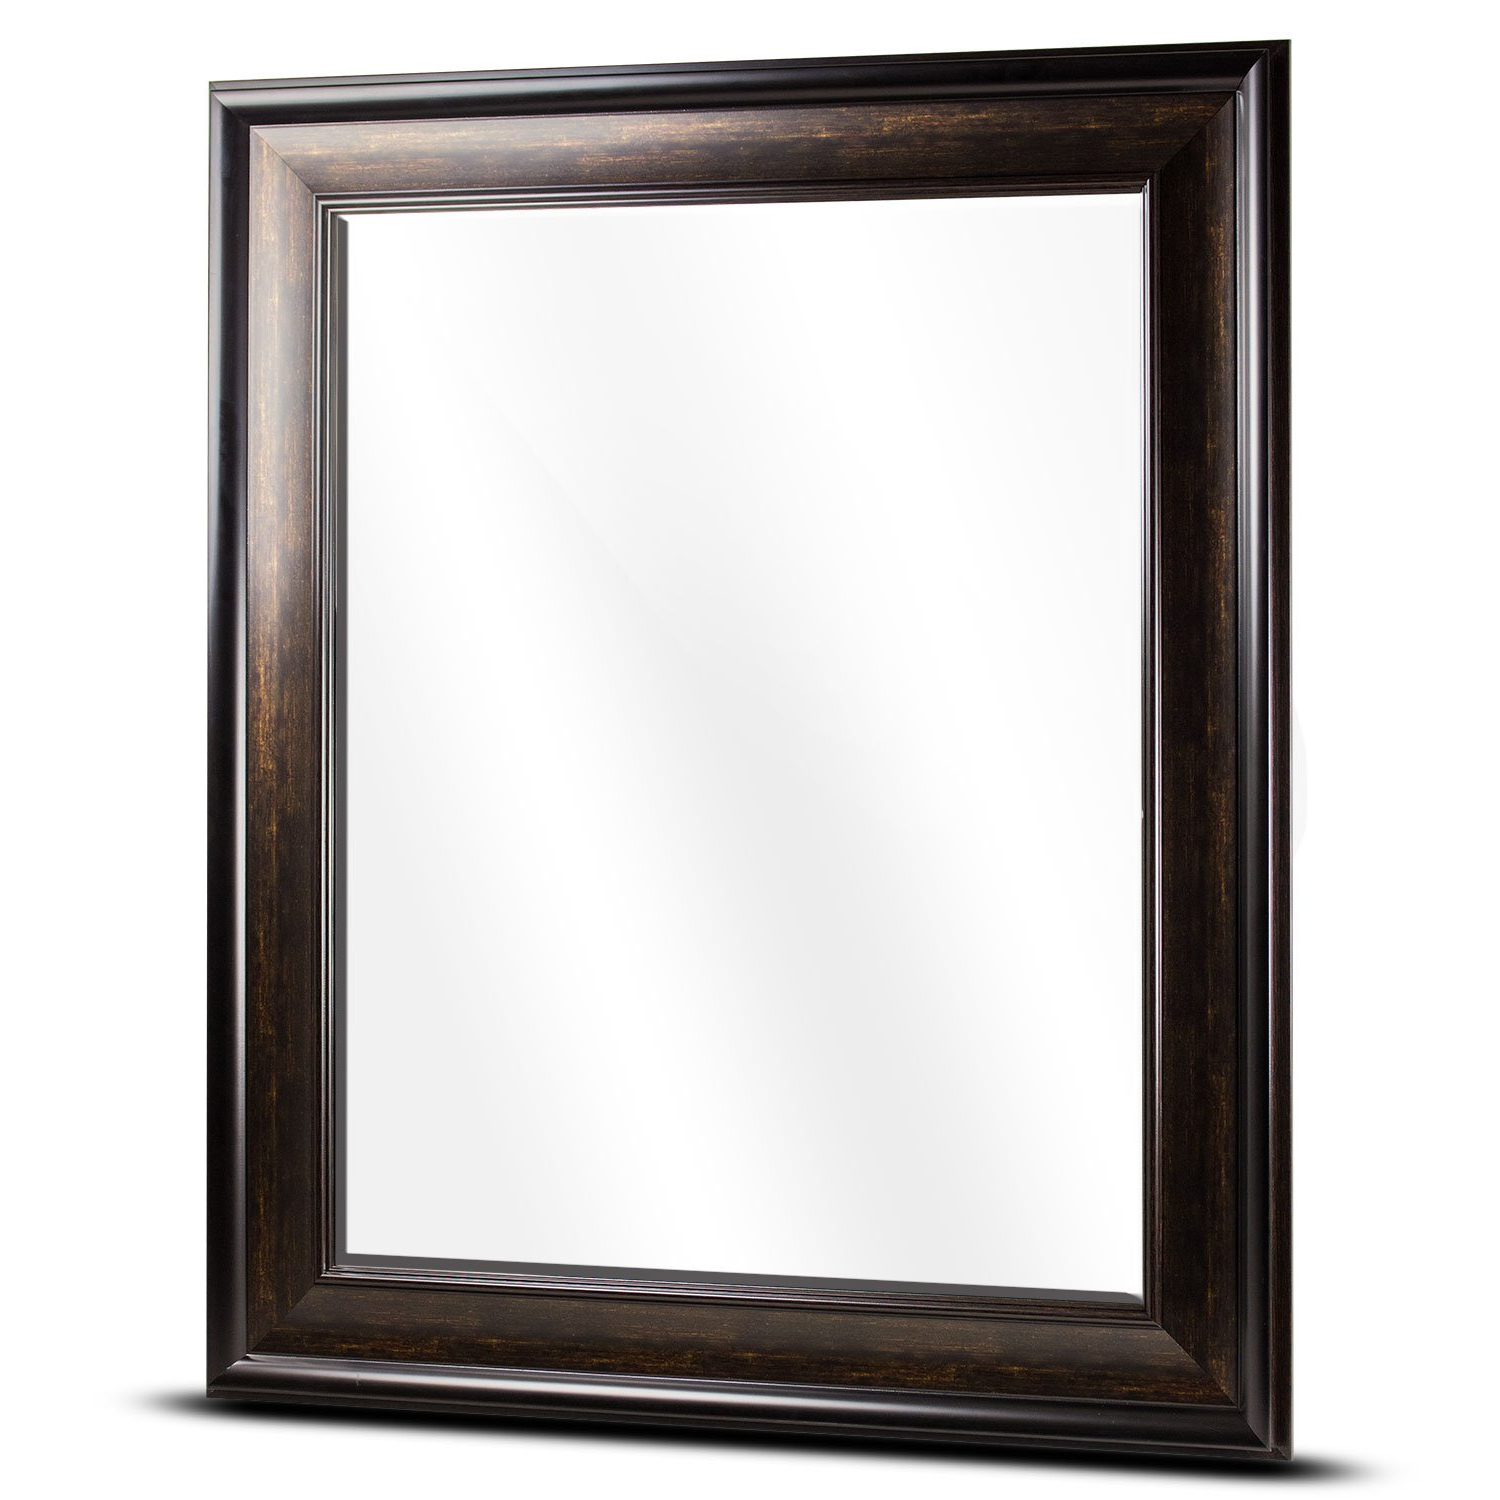 """American Art Decor Hartley Large Rectangular Framed Beveled Accent Wall Vanity Mirror – Brown (35"""" H X 29"""" L X 1"""" D) Inside 2019 Large Rectangular Wall Mirrors (View 18 of 20)"""